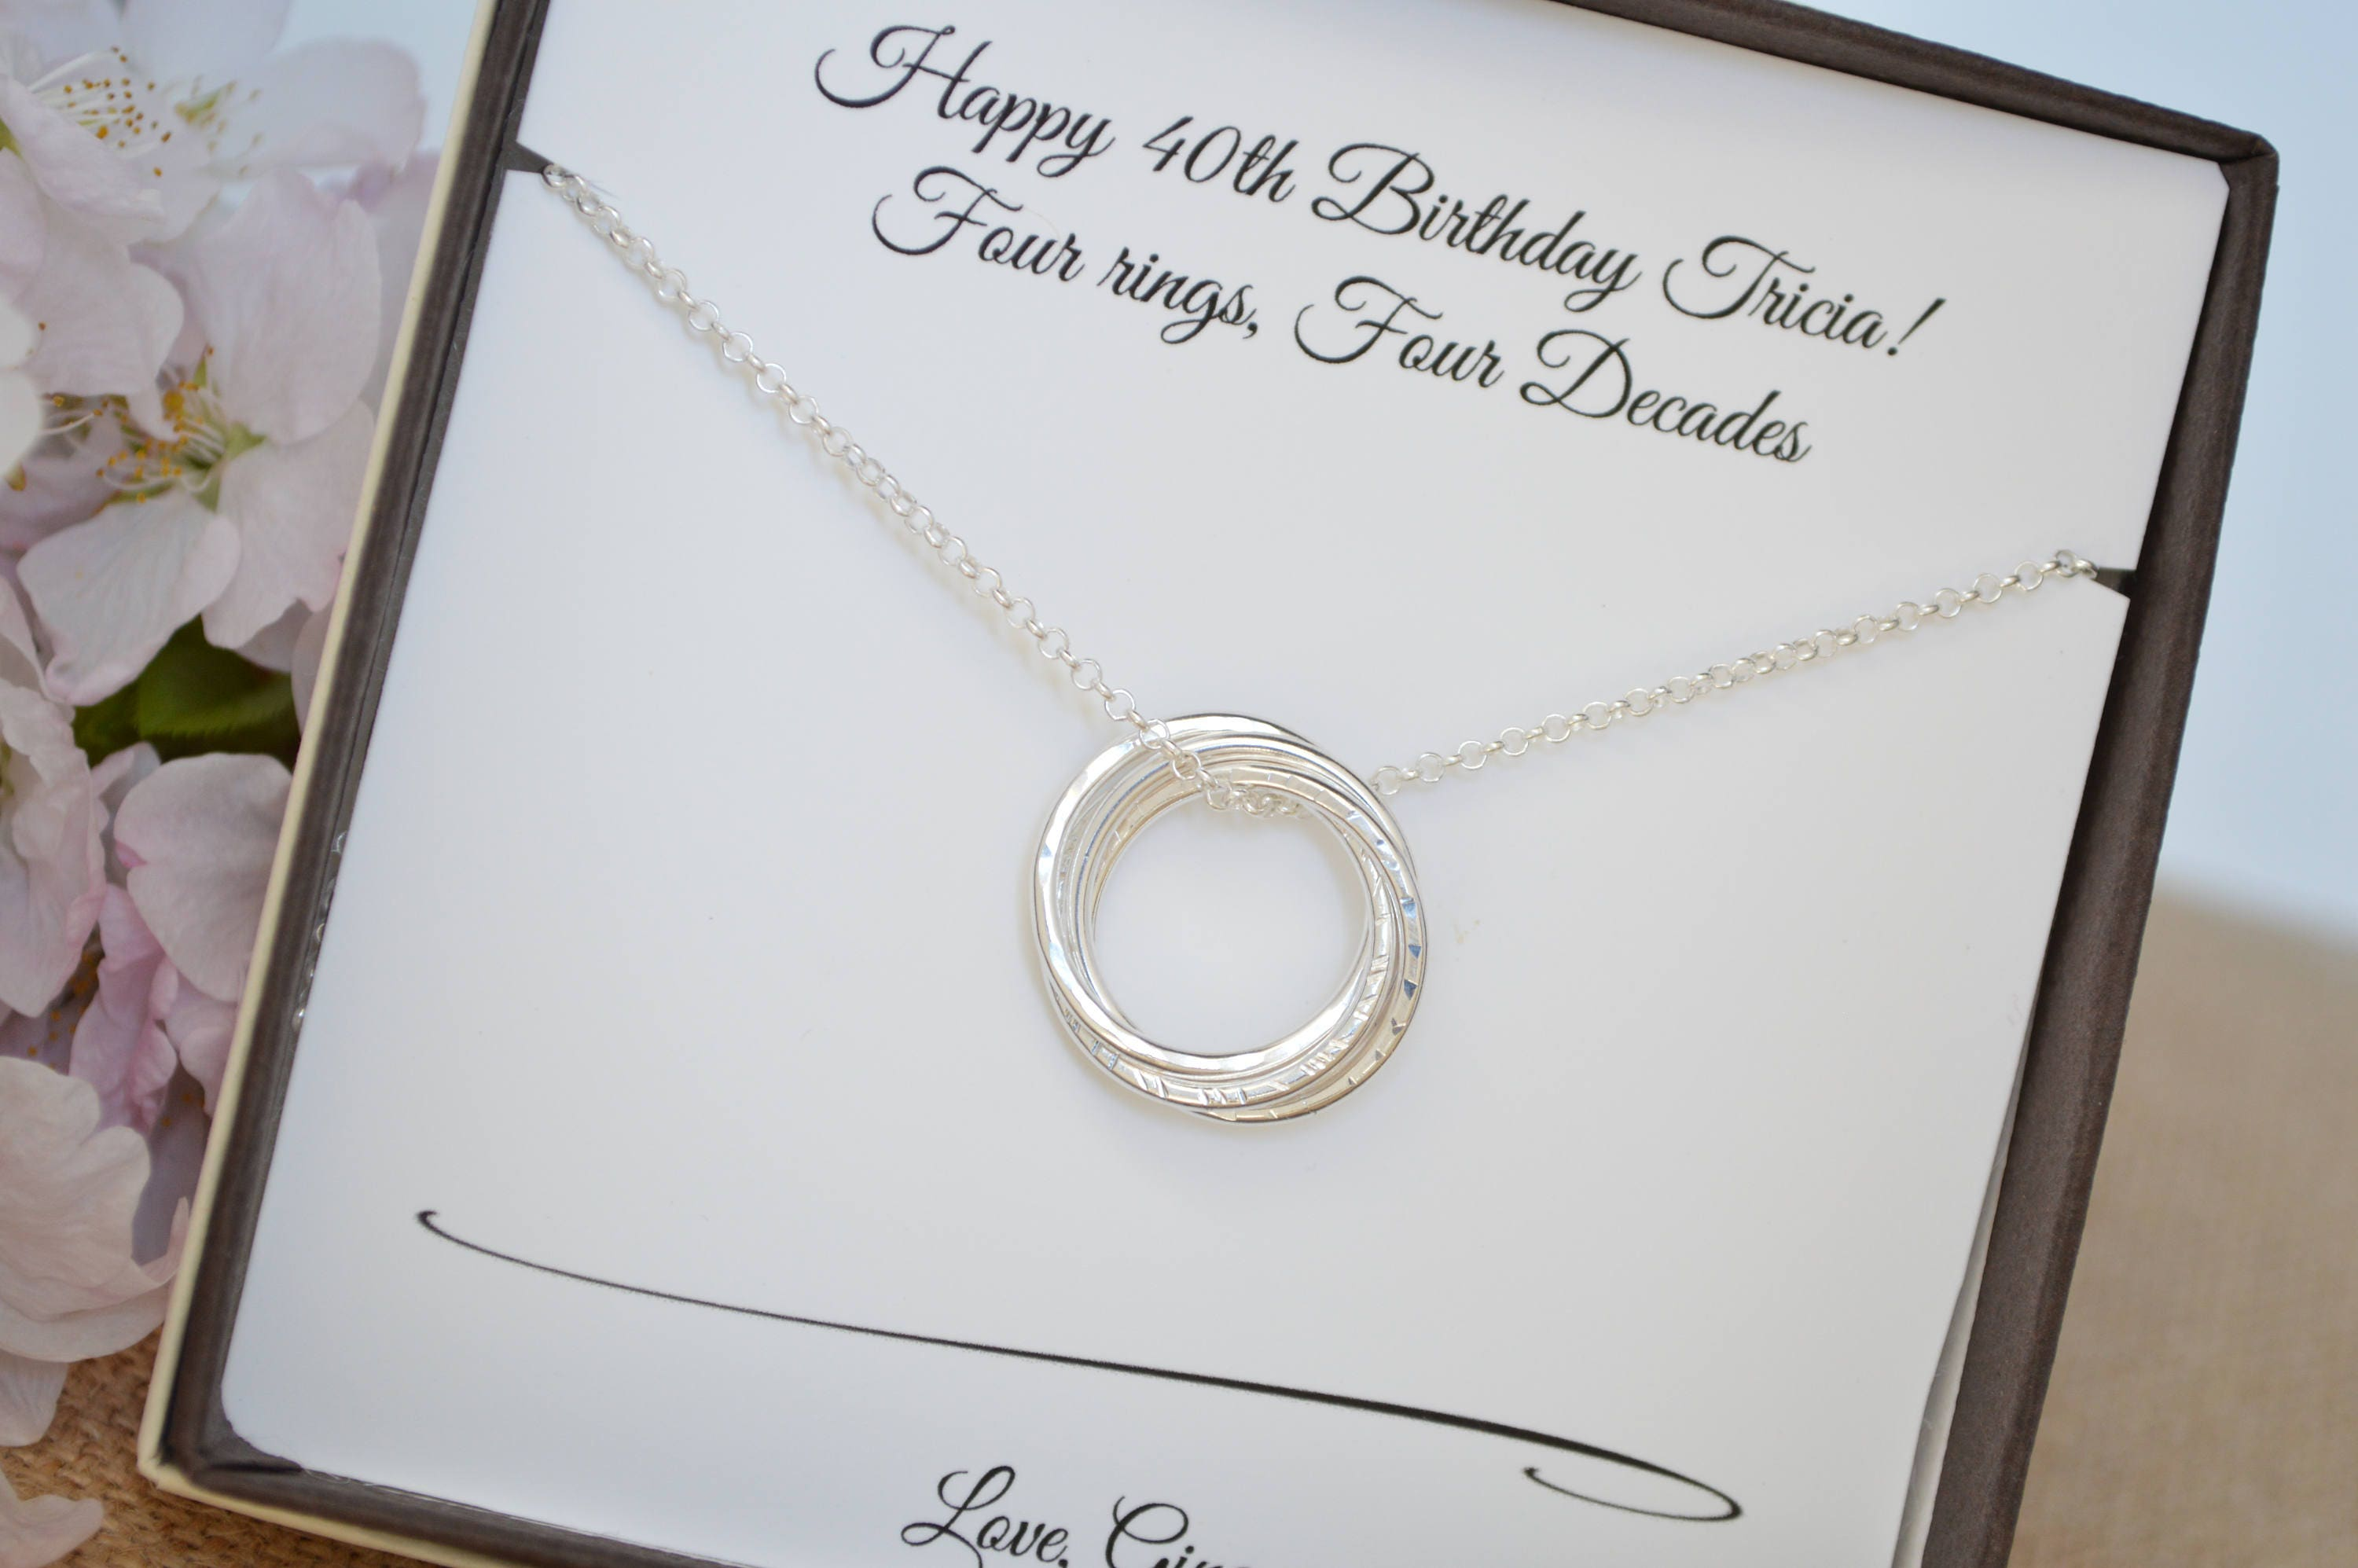 40th Birthday Gift Forwomen 4 Sisters Necklace Best Friend Rings Gifts For Her 4rd Anniversary